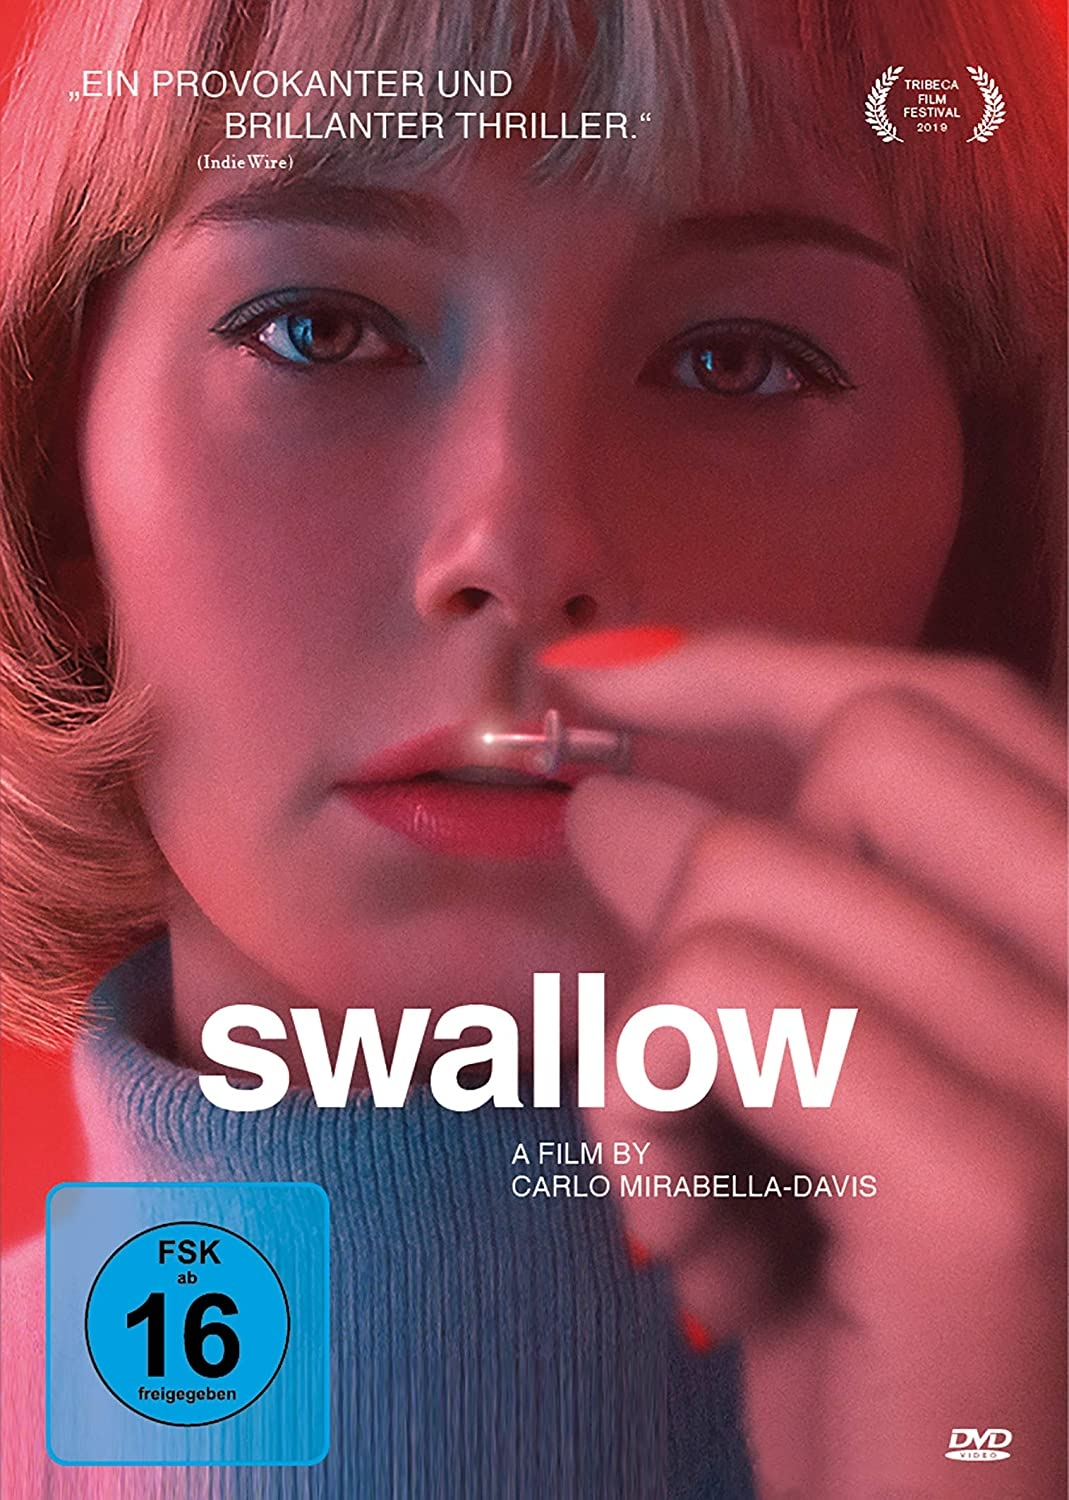 dvd 21 02 swallow